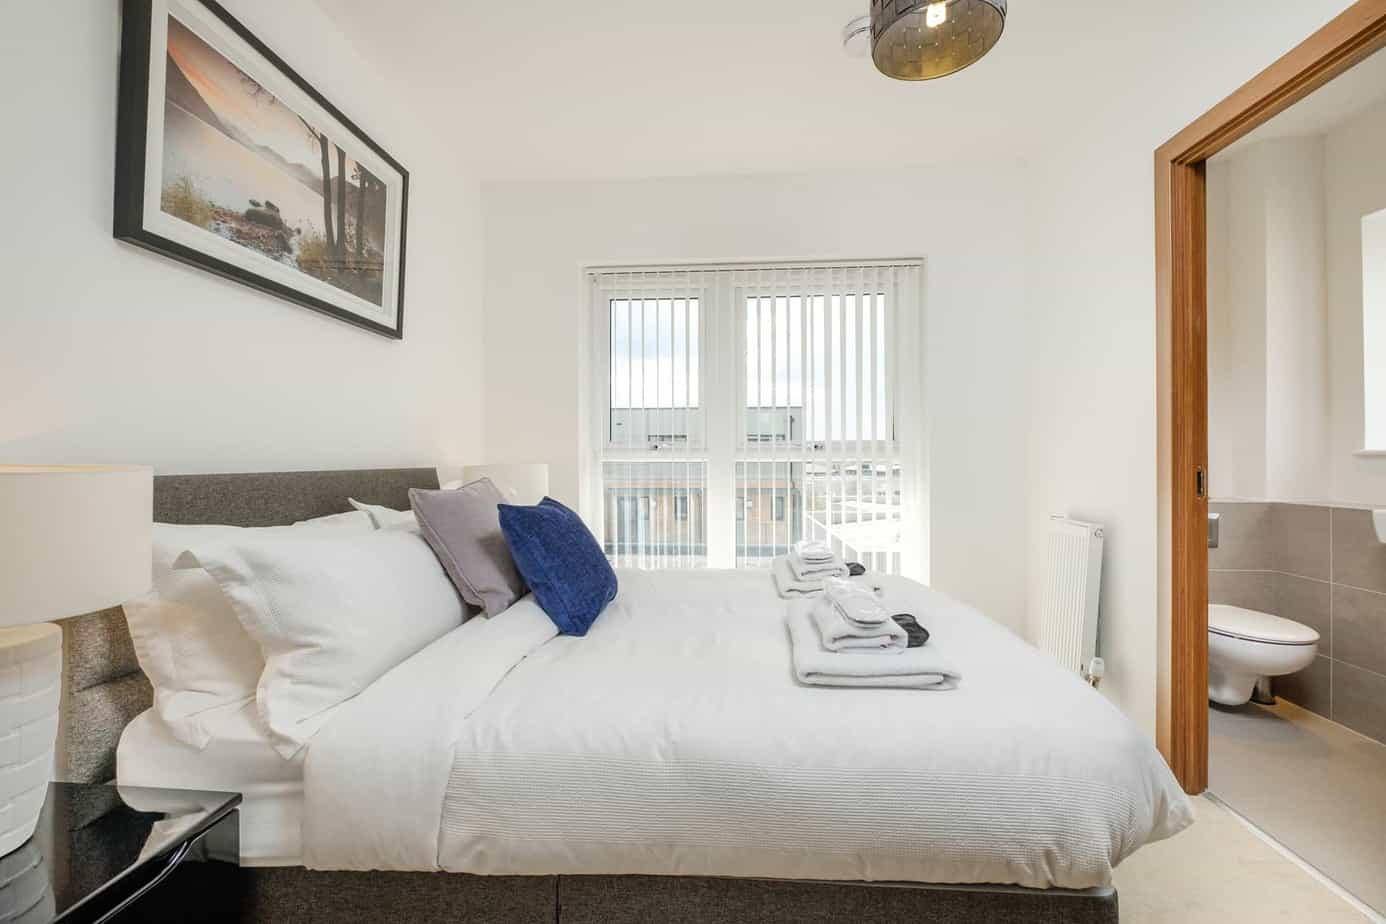 Tailored Stays grand central cambridge serviced apartment second bedroon with ensuite